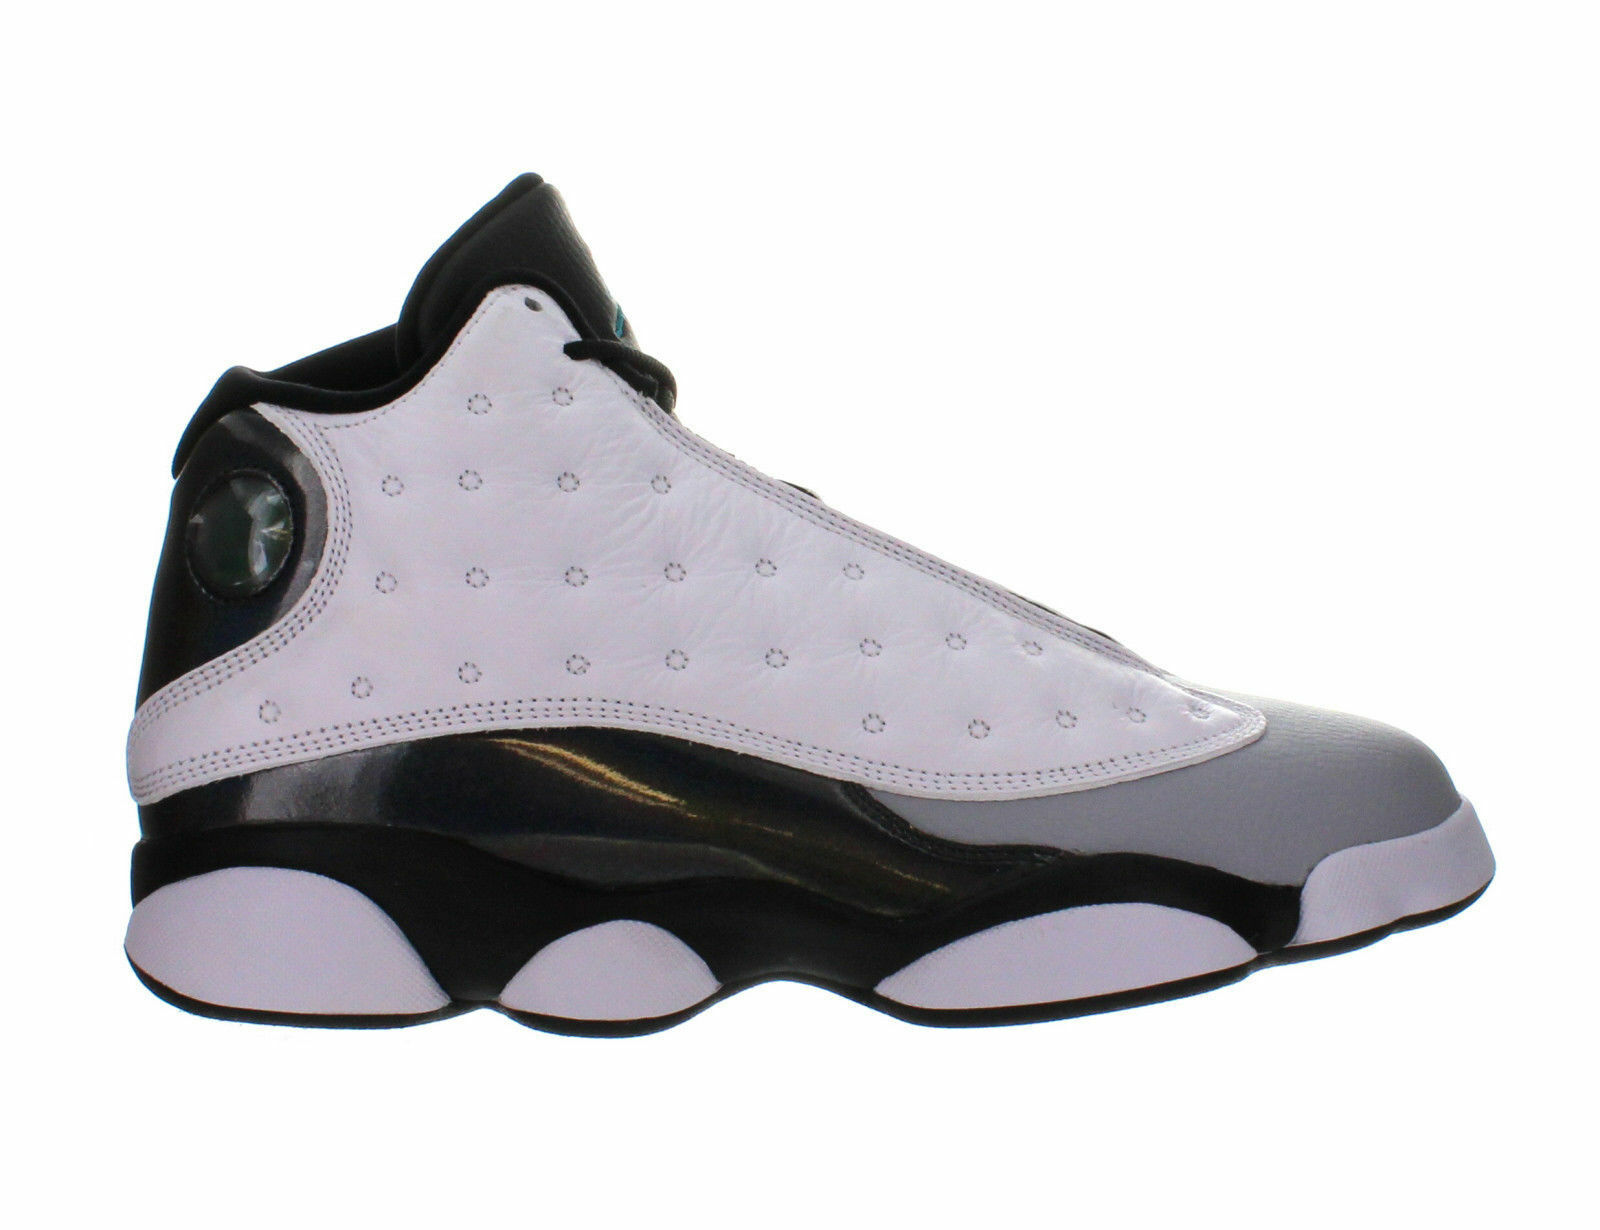 Air Jordan XIII retro shoes hold special meaning because they were one of the last styles